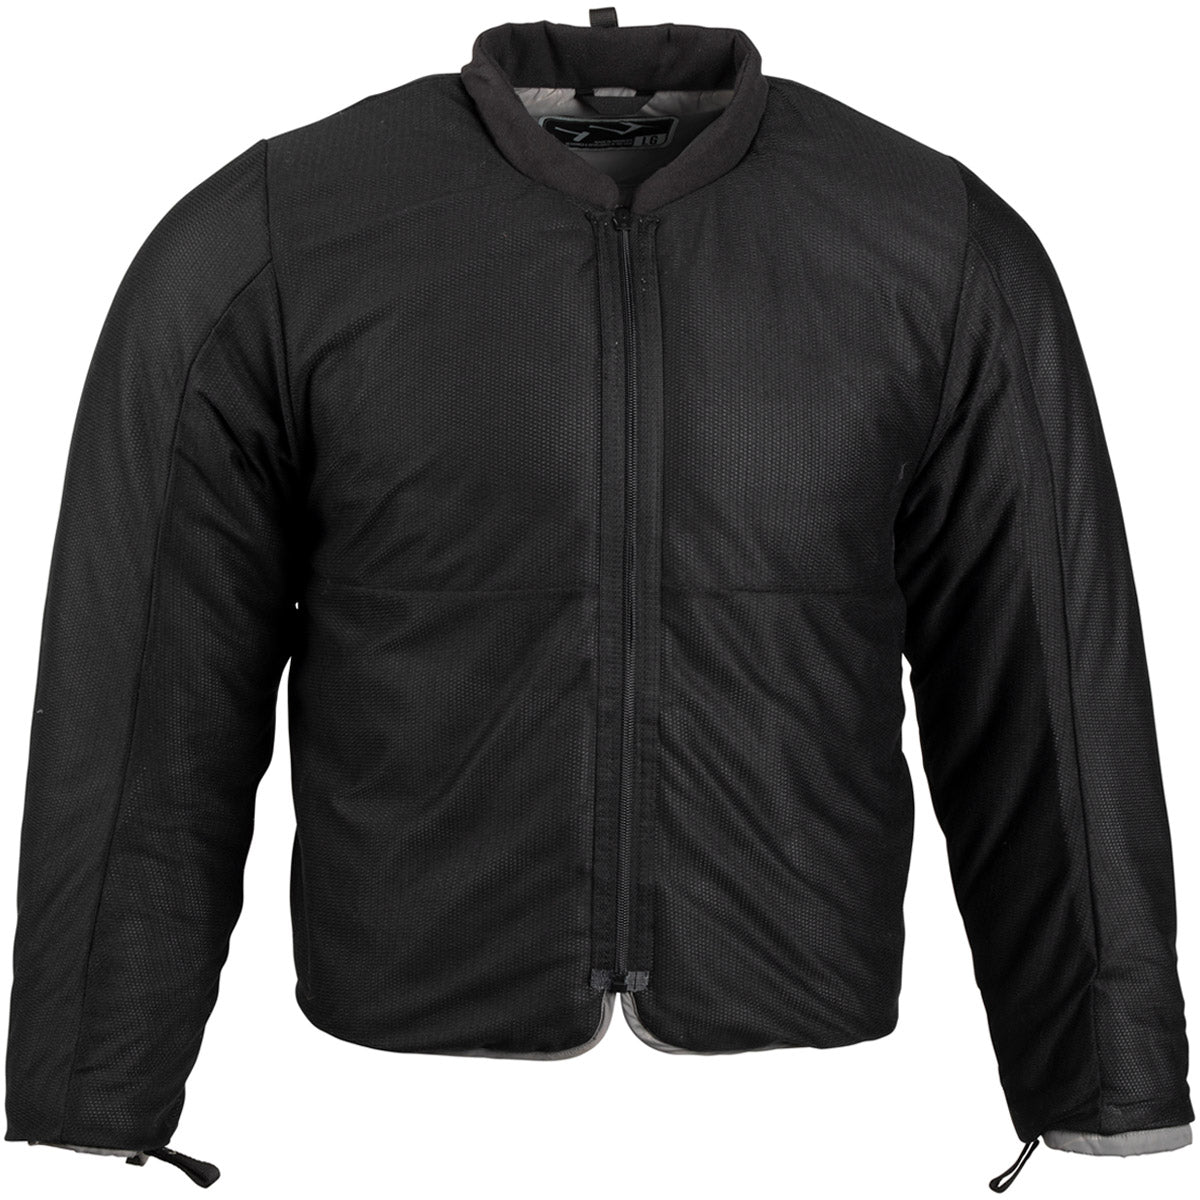 R-200 Ignite Jacket Liner